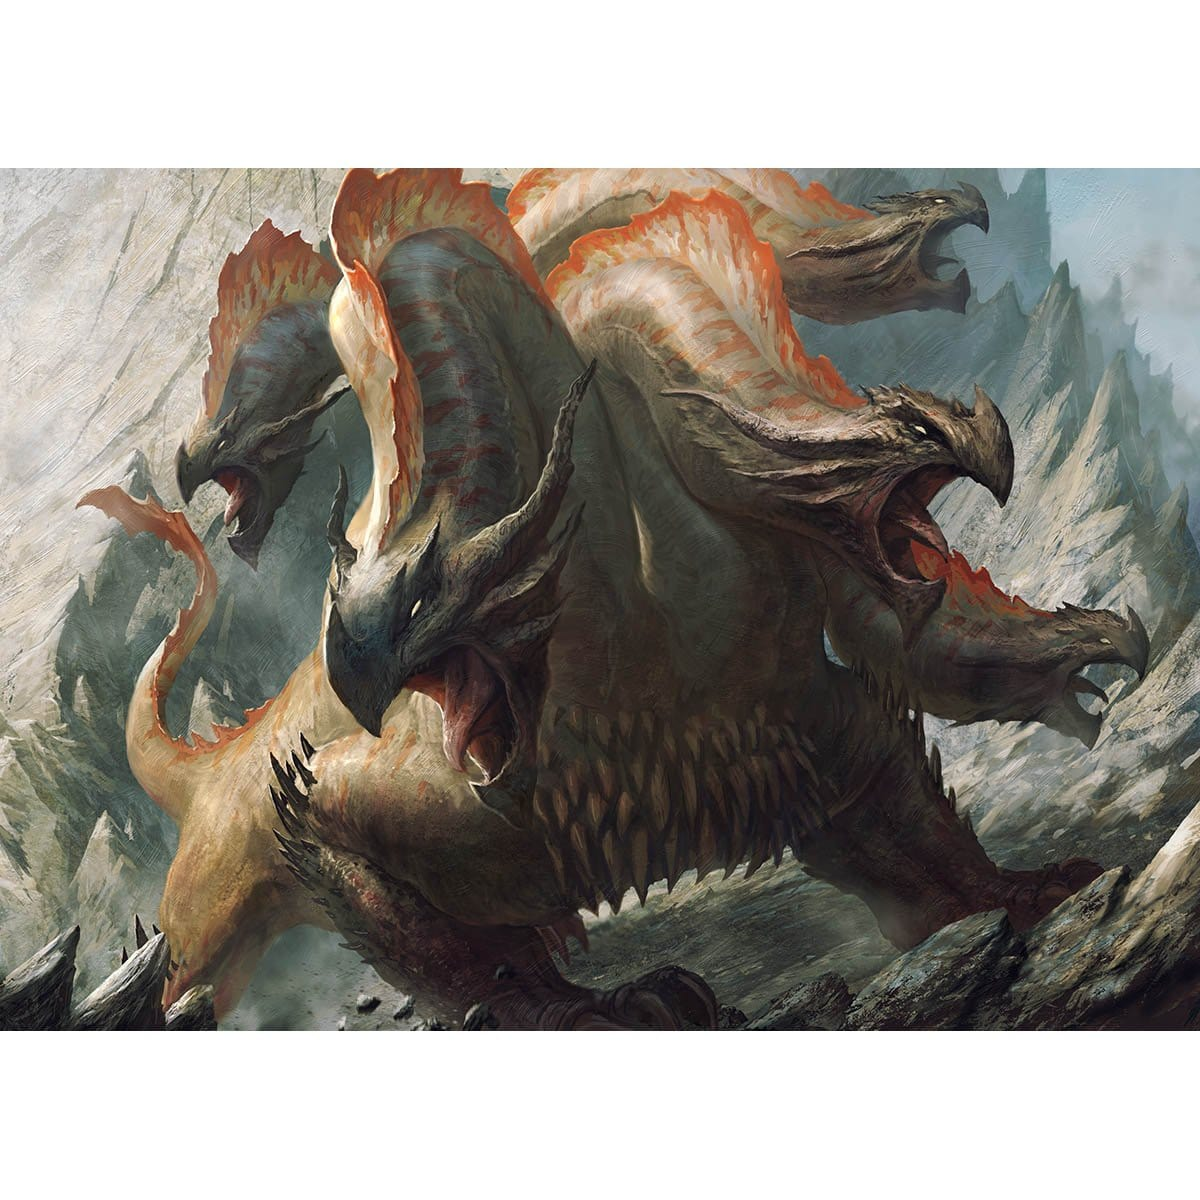 Polukranos, World Eater Print - Print - Original Magic Art - Accessories for Magic the Gathering and other card games